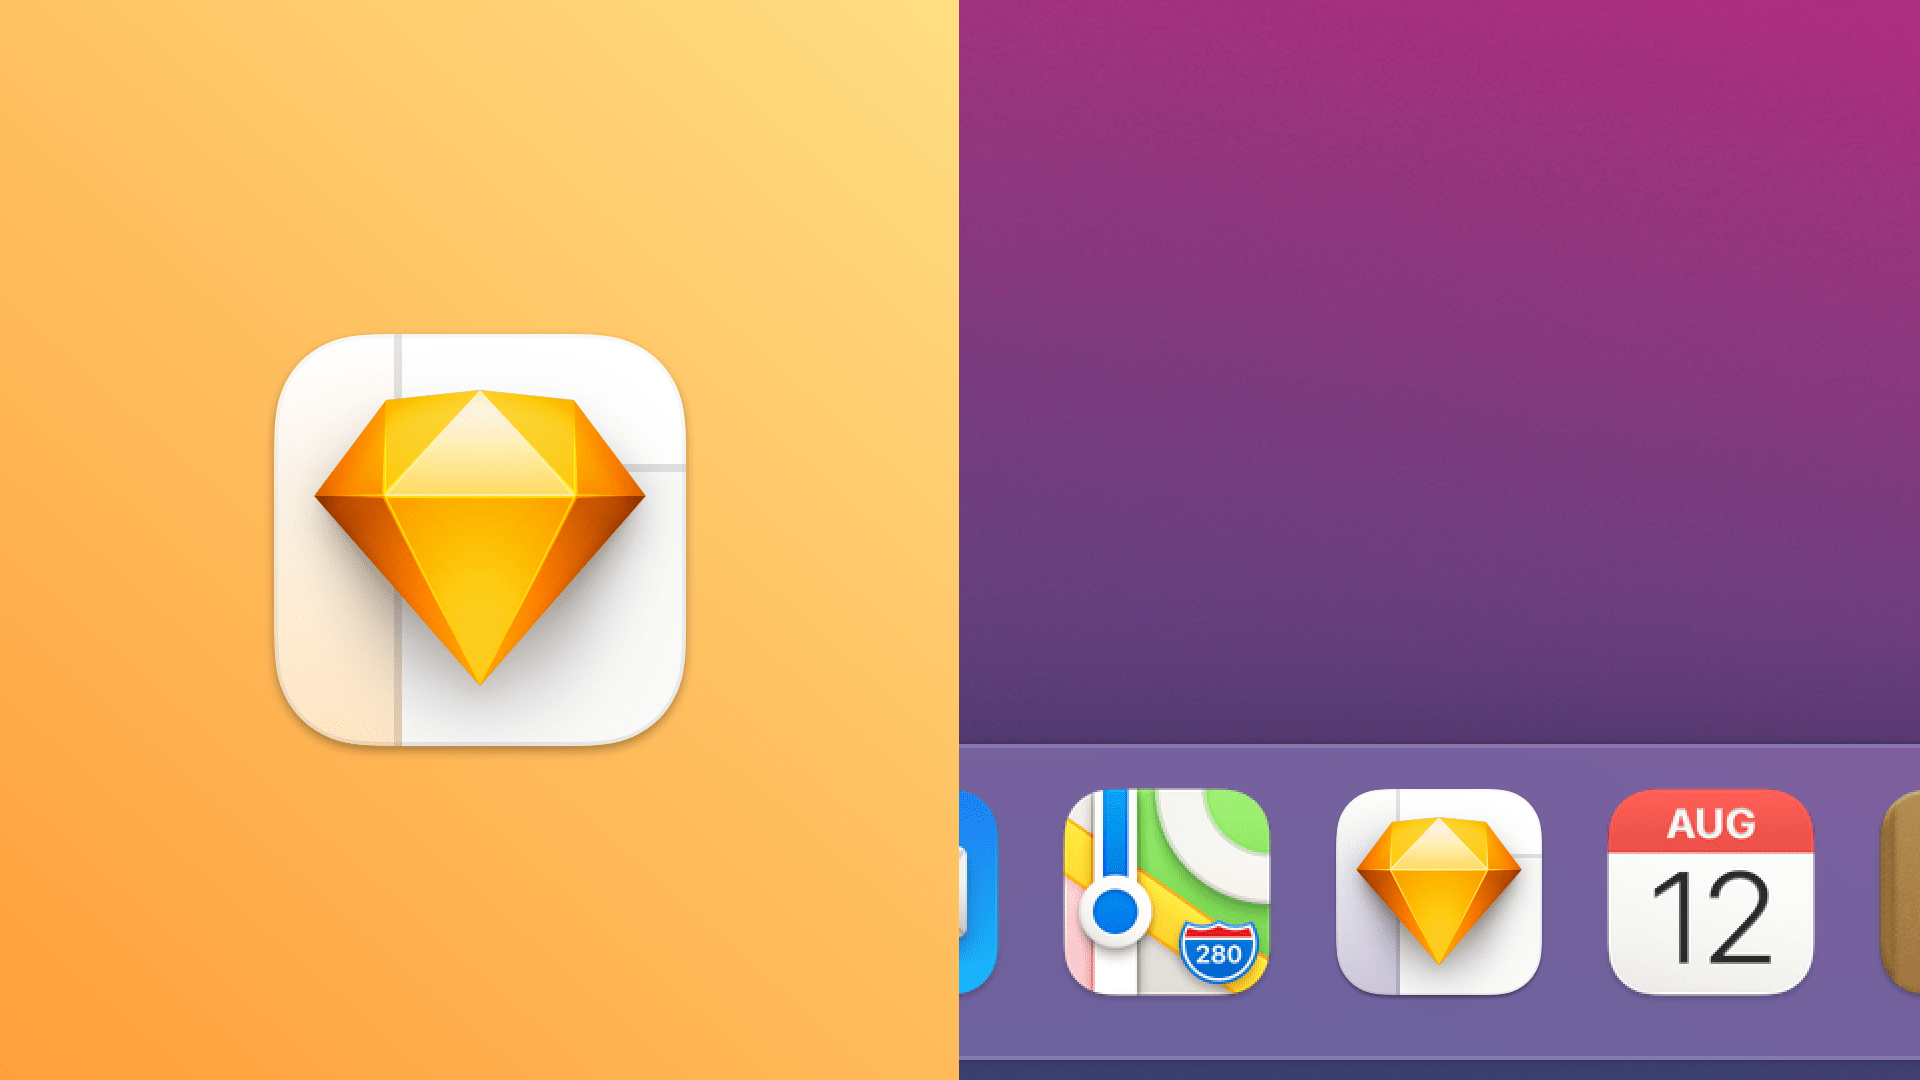 The final icon, shown on the left standing on its own, and on the right in a macOS Dock